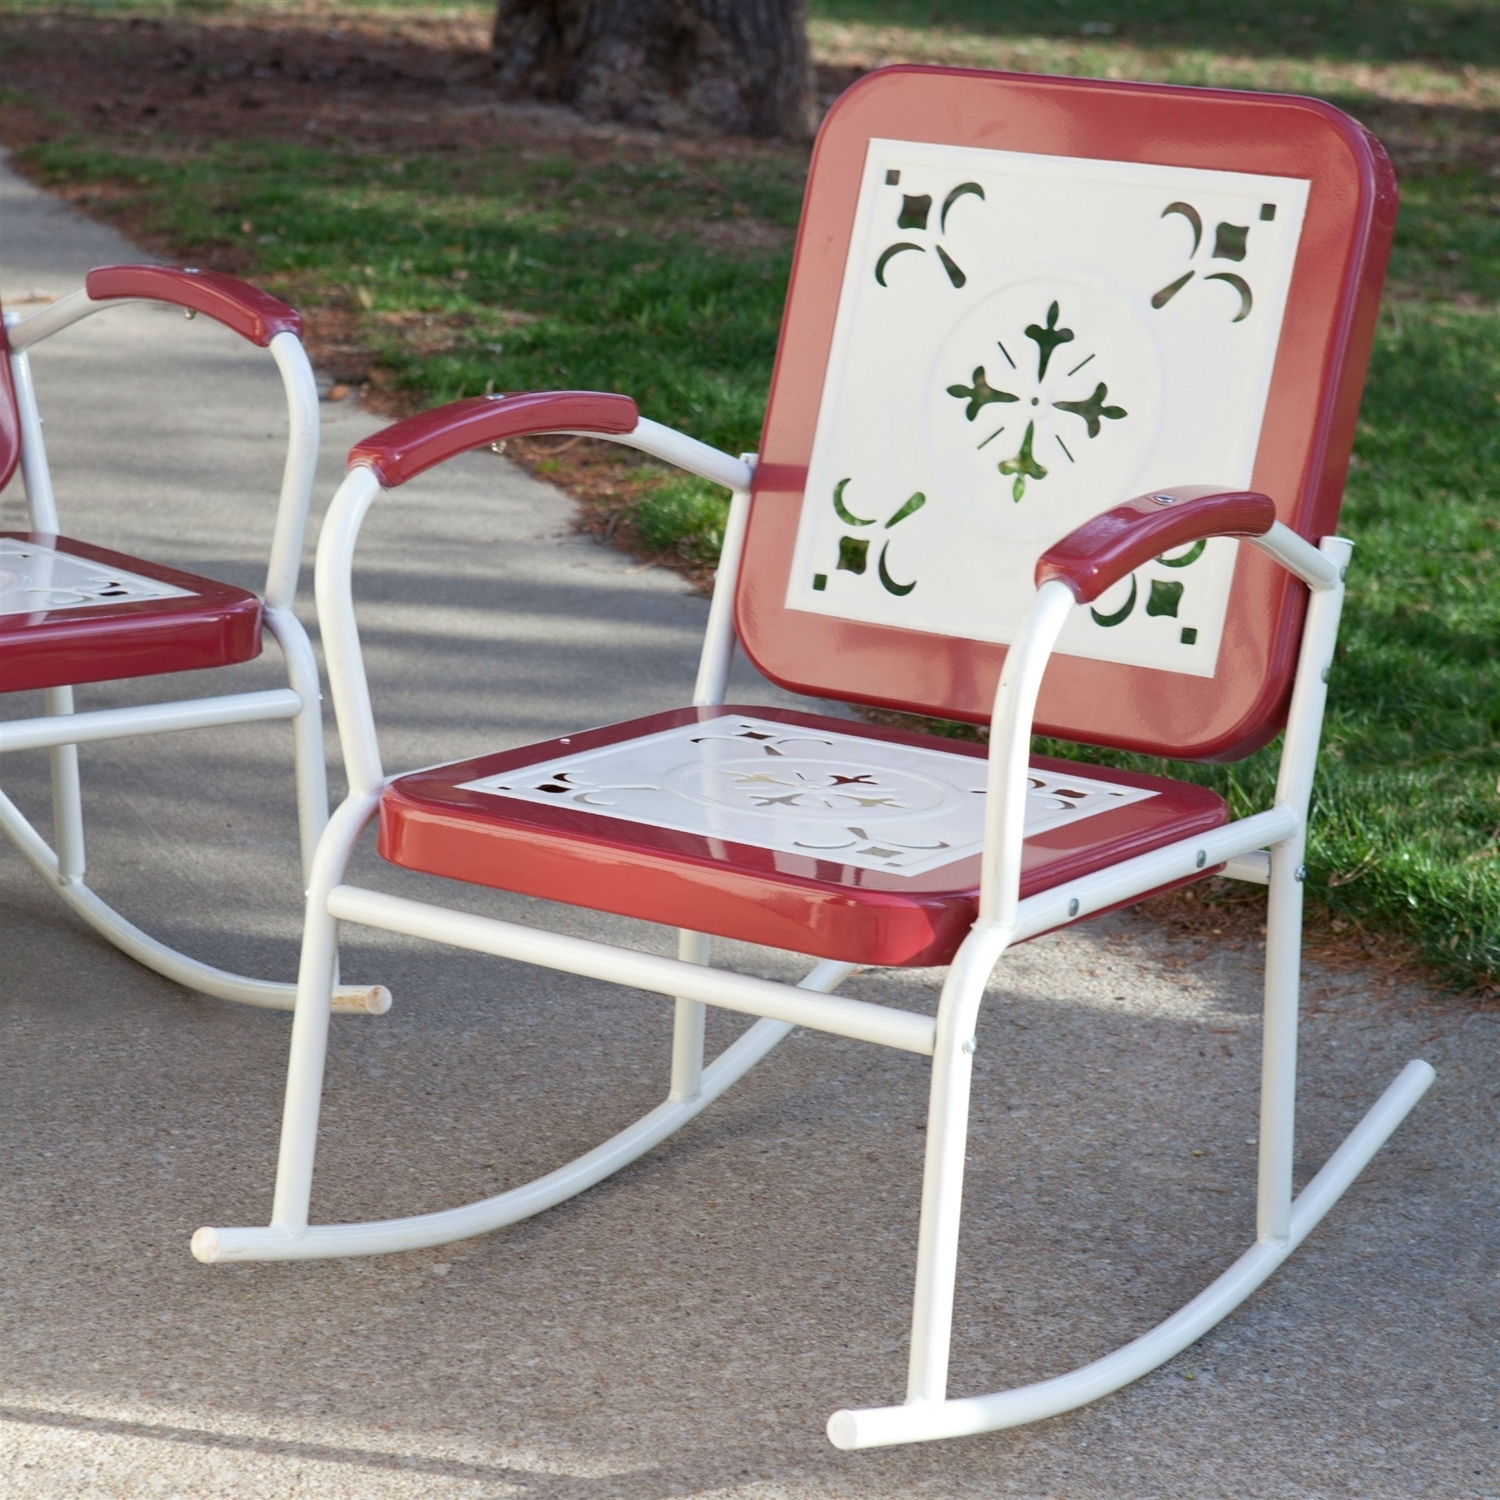 Outdoor Patio Metal Rocking Chairs Intended For Most Recent Cherry Red Retro Patio 3 Pc (View 8 of 15)